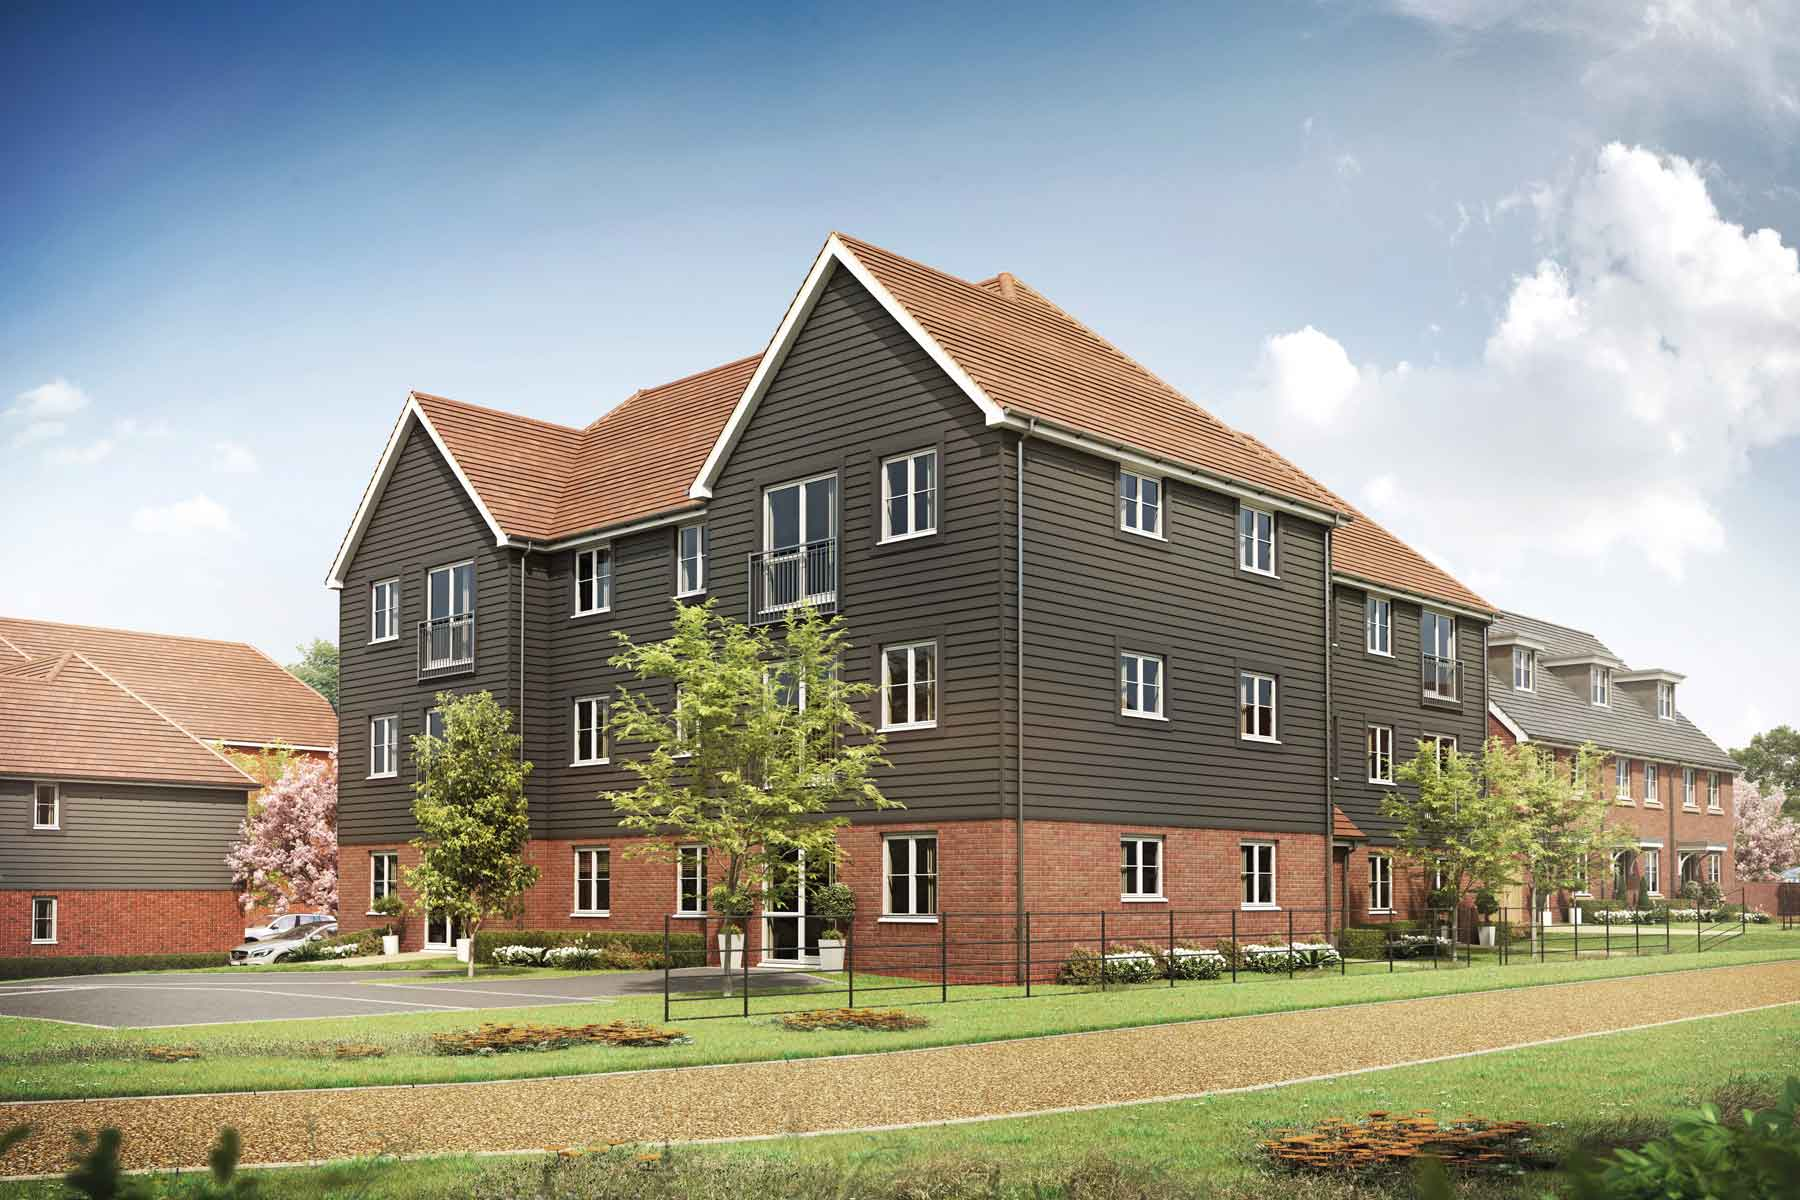 PLOTS-42-50---BLOCK-D Kilnwood Vale apartments